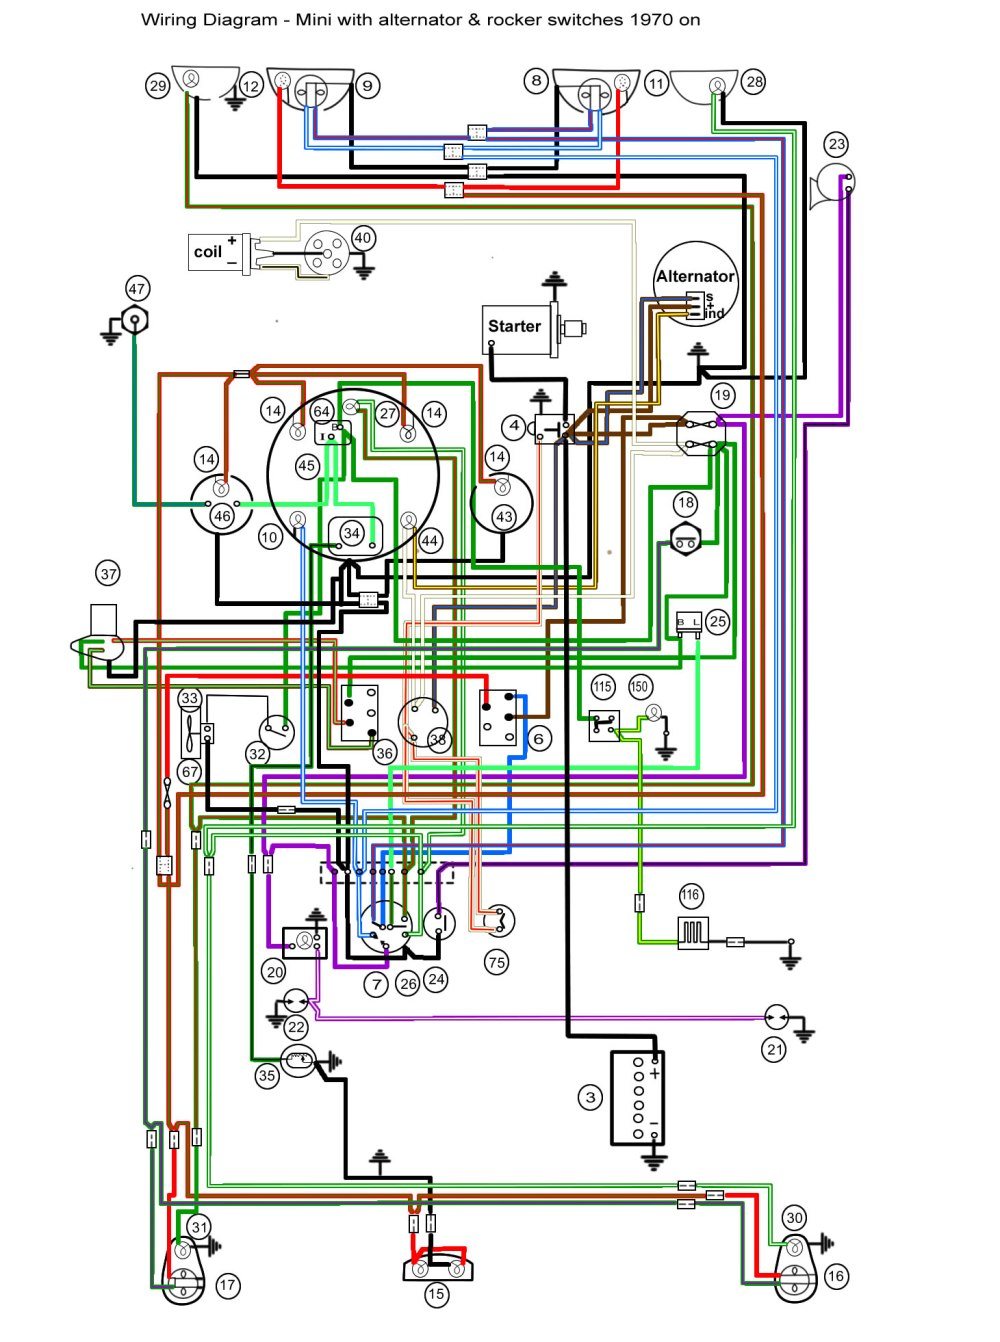 medium resolution of mini wiring diagrams wiring diagrams wrx wiring diagram 1988 mini wiring diagram